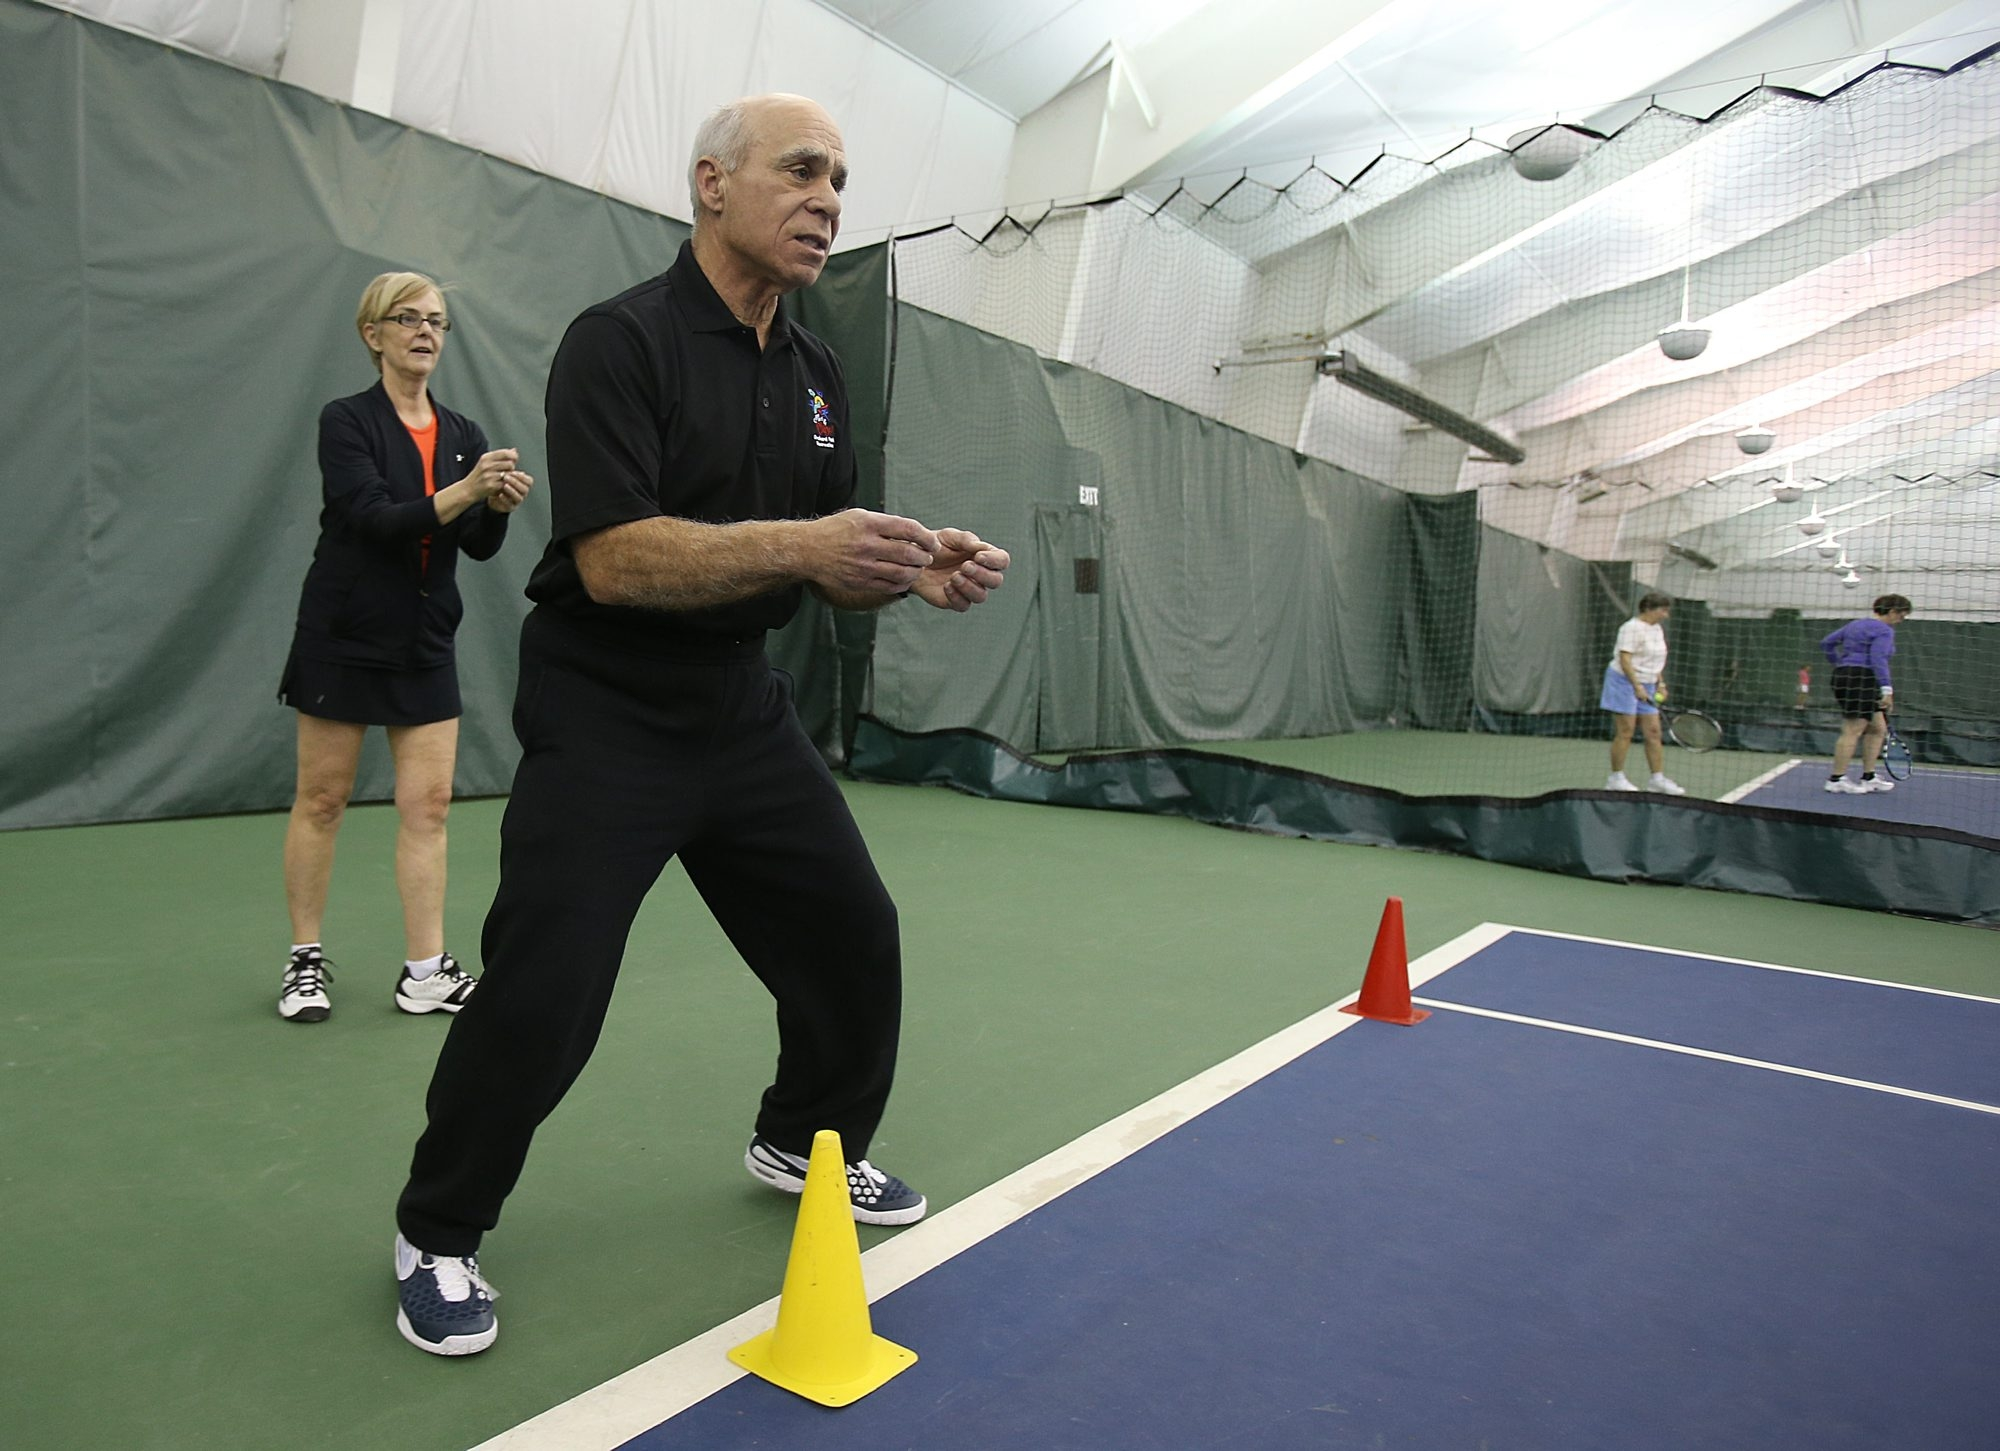 Tennis instructor Sam LaDuca works with client Sheila Pace, of Buffalo, at the Village Glen Tennis Club in Williamsville.